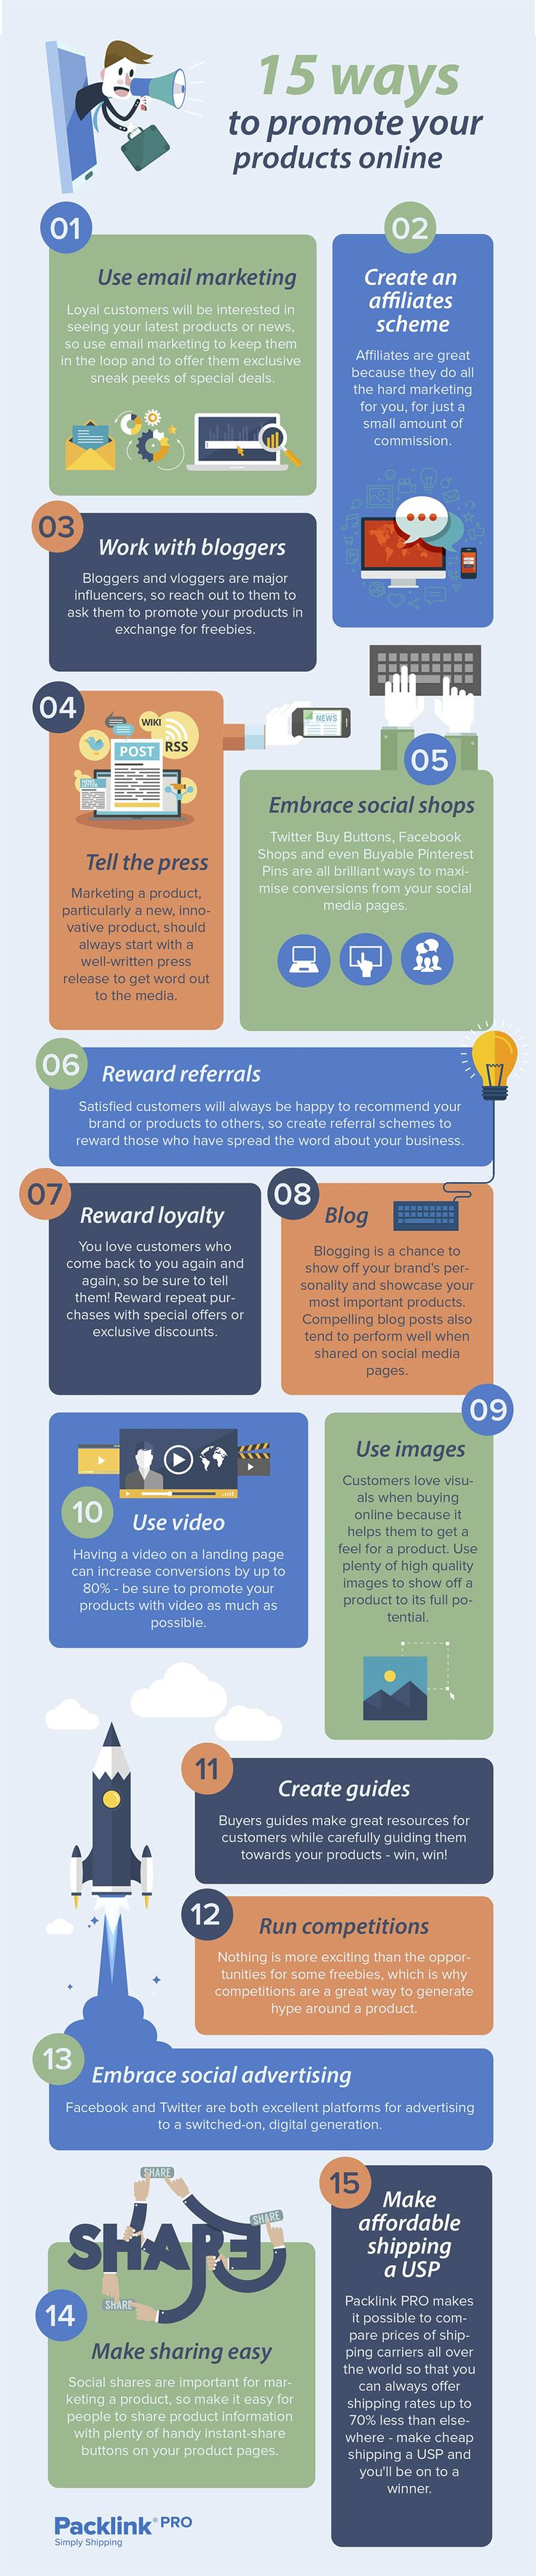 Own an Online Shop? 15 Ways to Promote Your Products Online [Infographic]